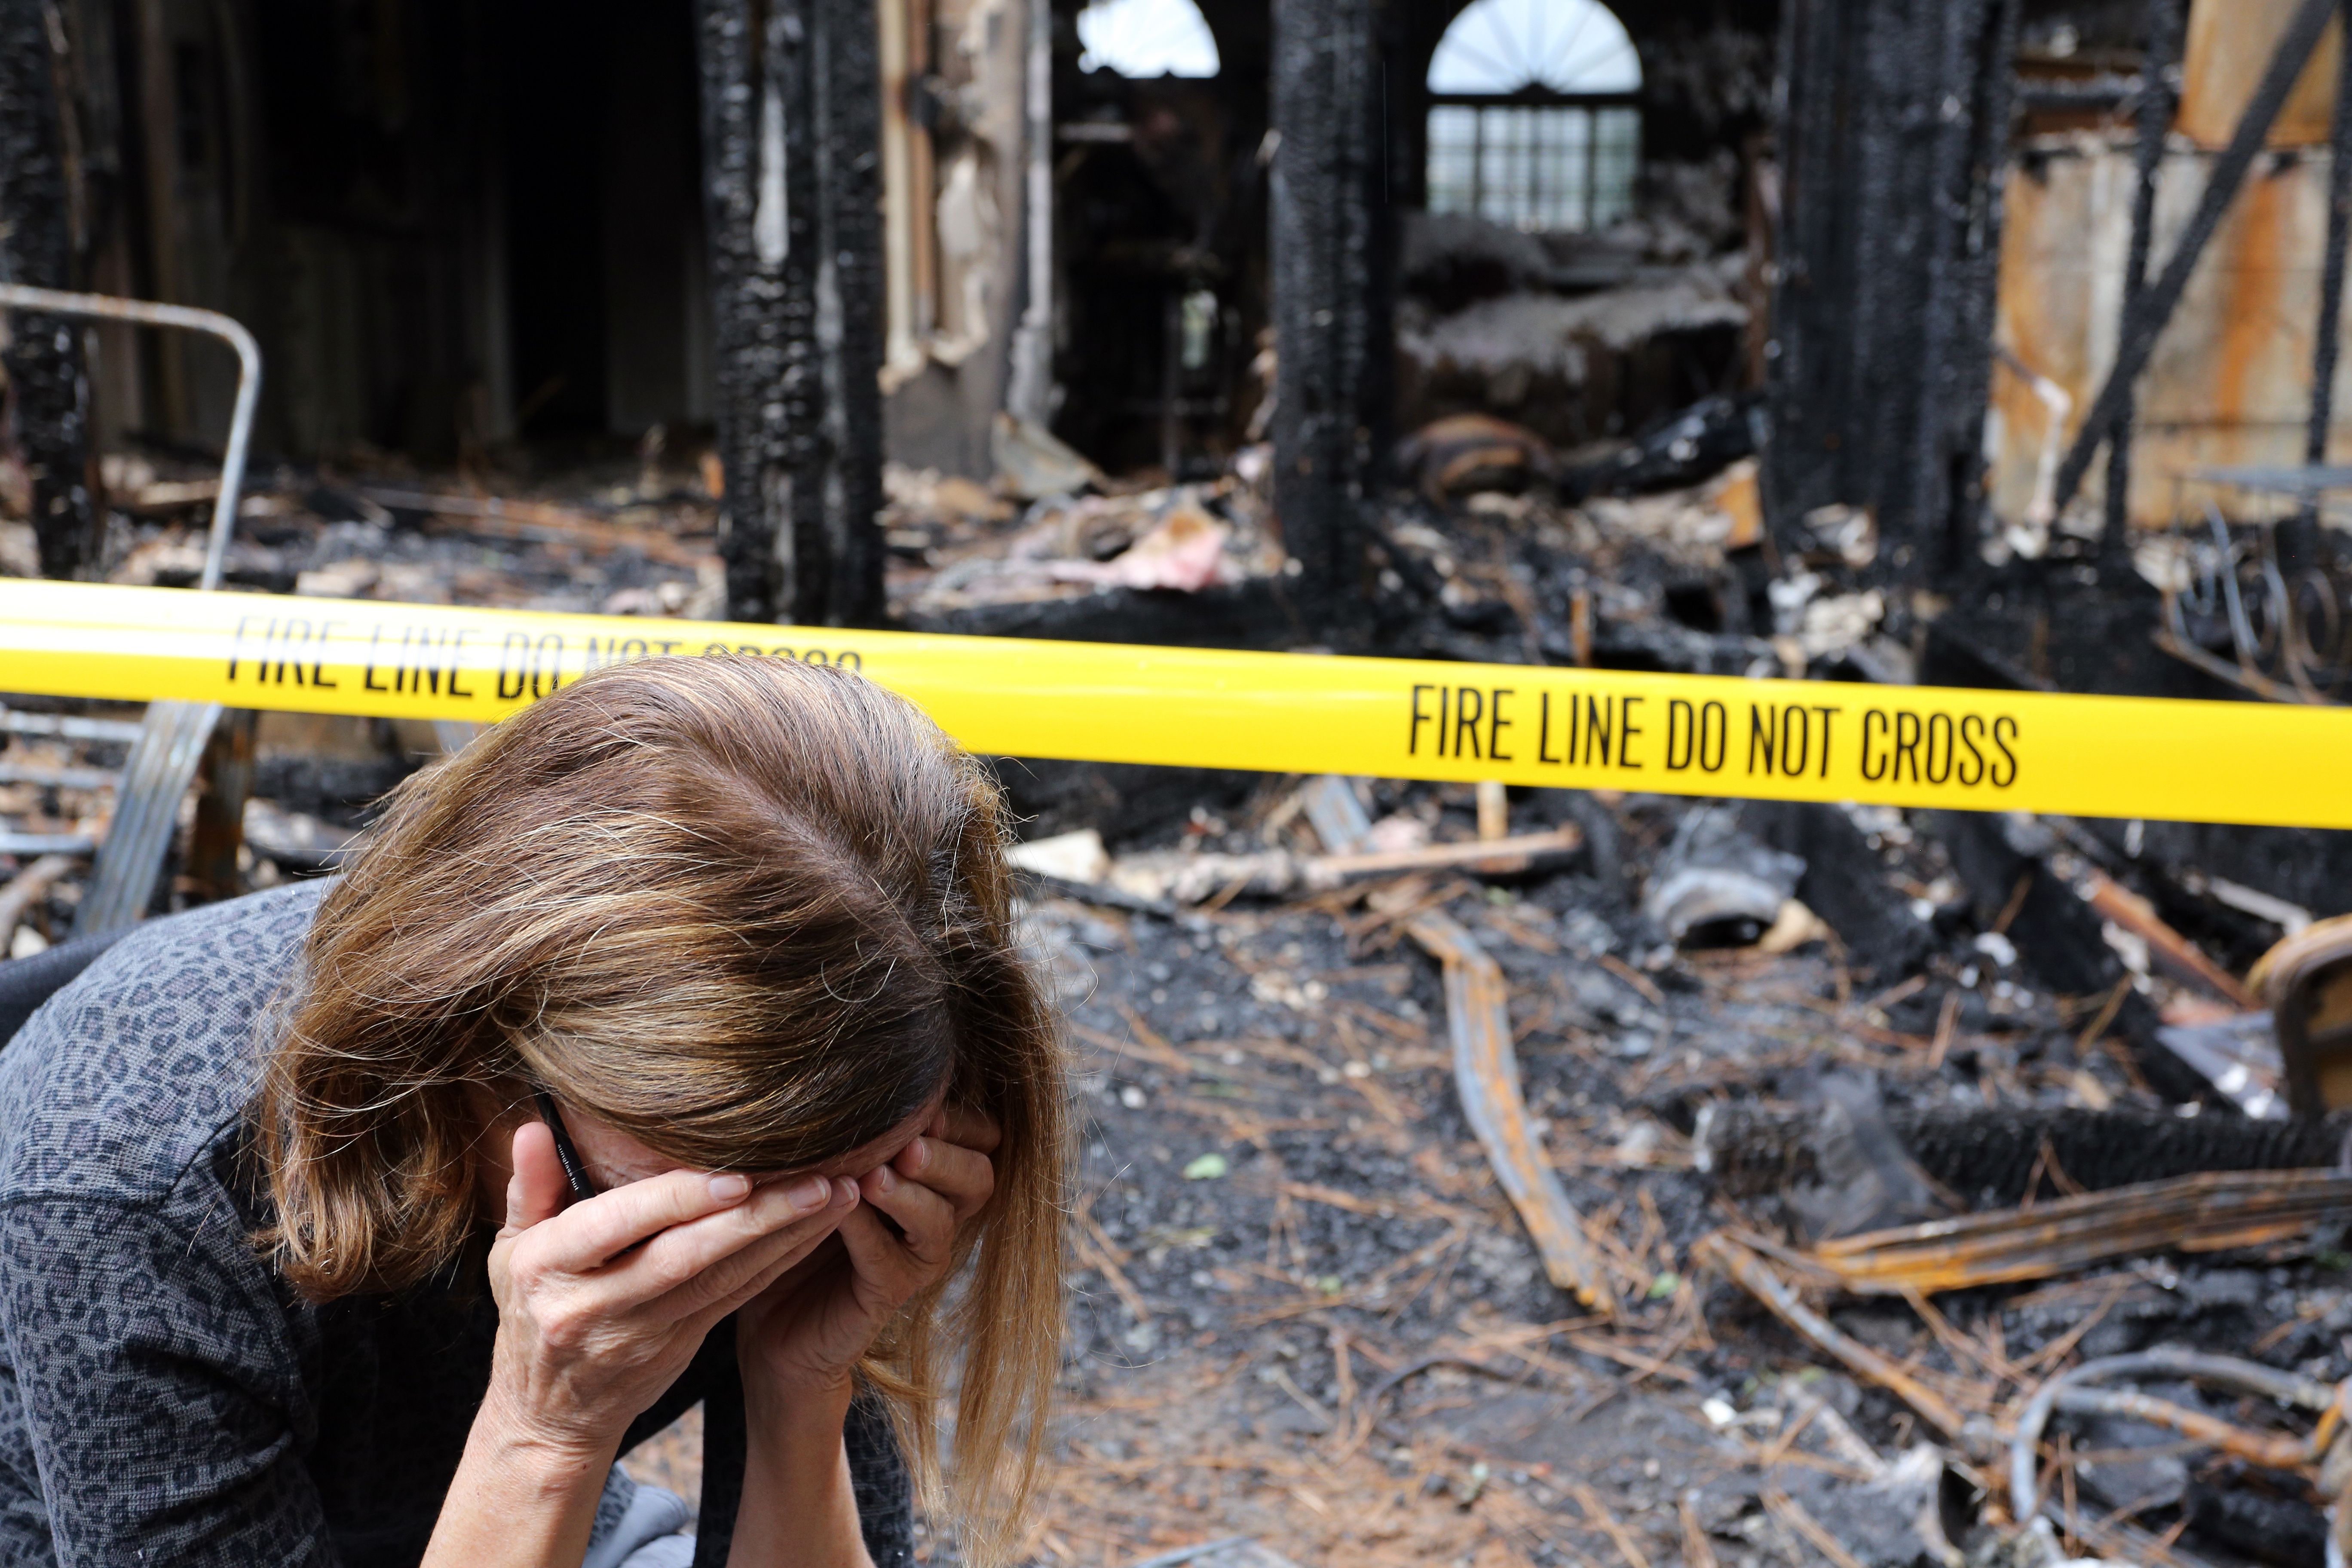 LANDLORDS: FIRE PREPAREDNESS – IS YOUR PROPERTY PROTECTED?